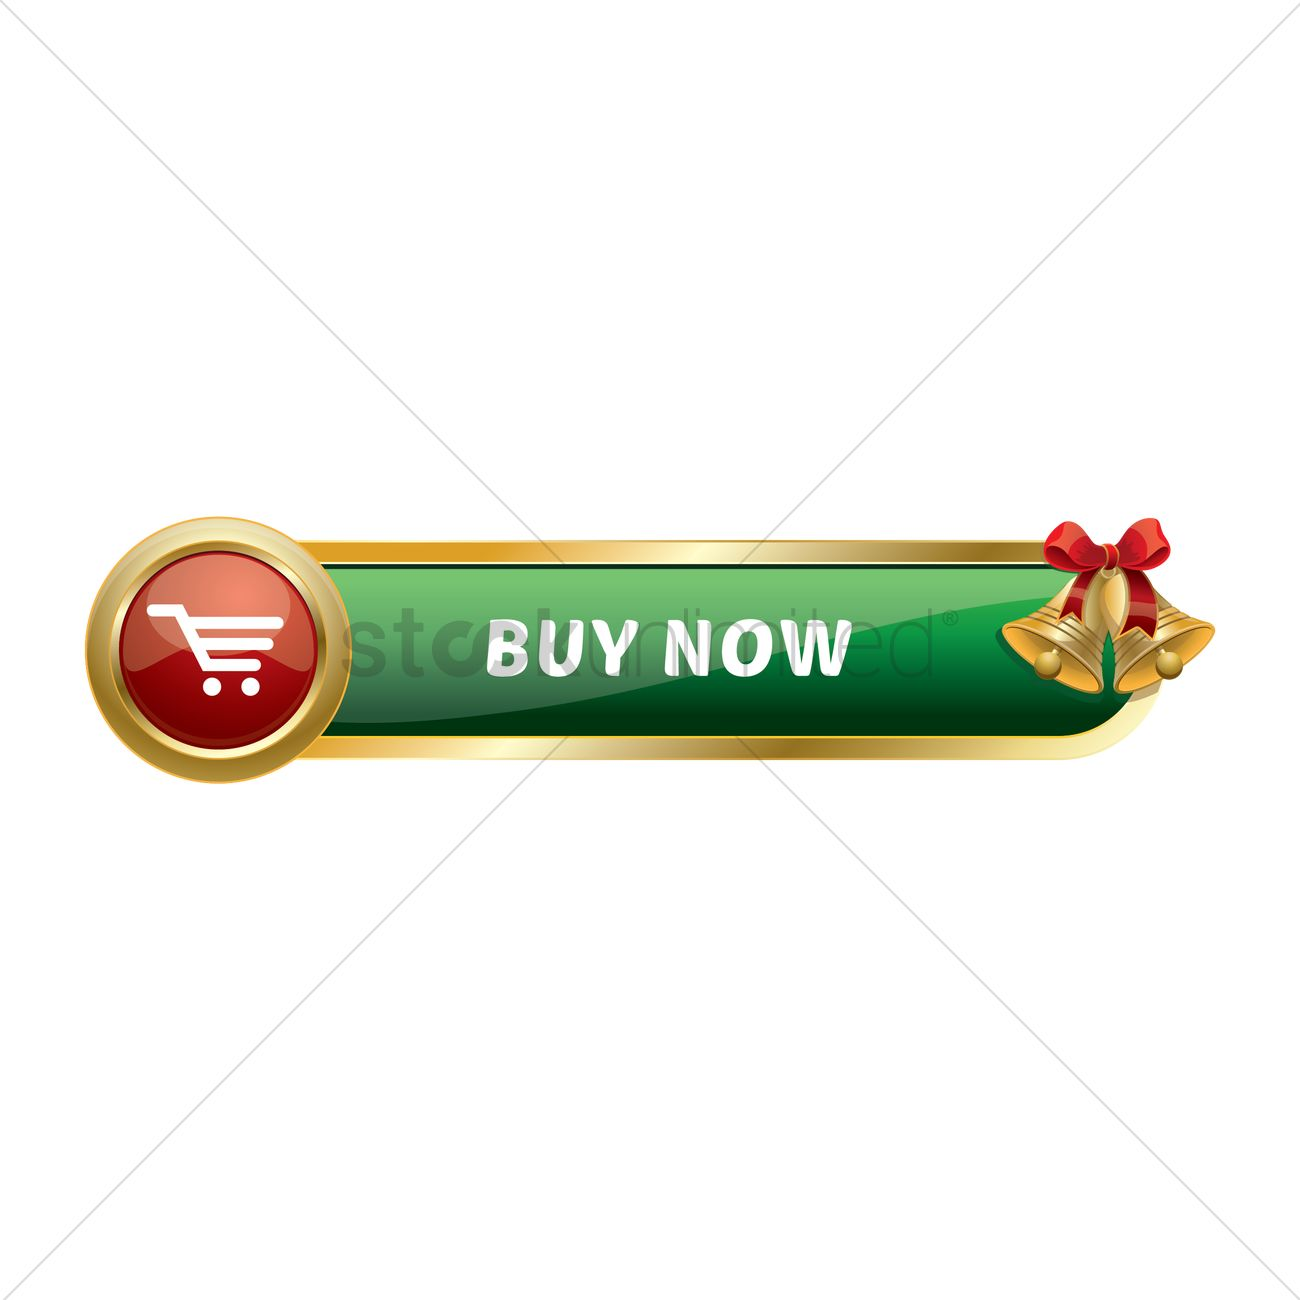 Christmas themed buy now button Vector Image - 1320493 | StockUnlimited